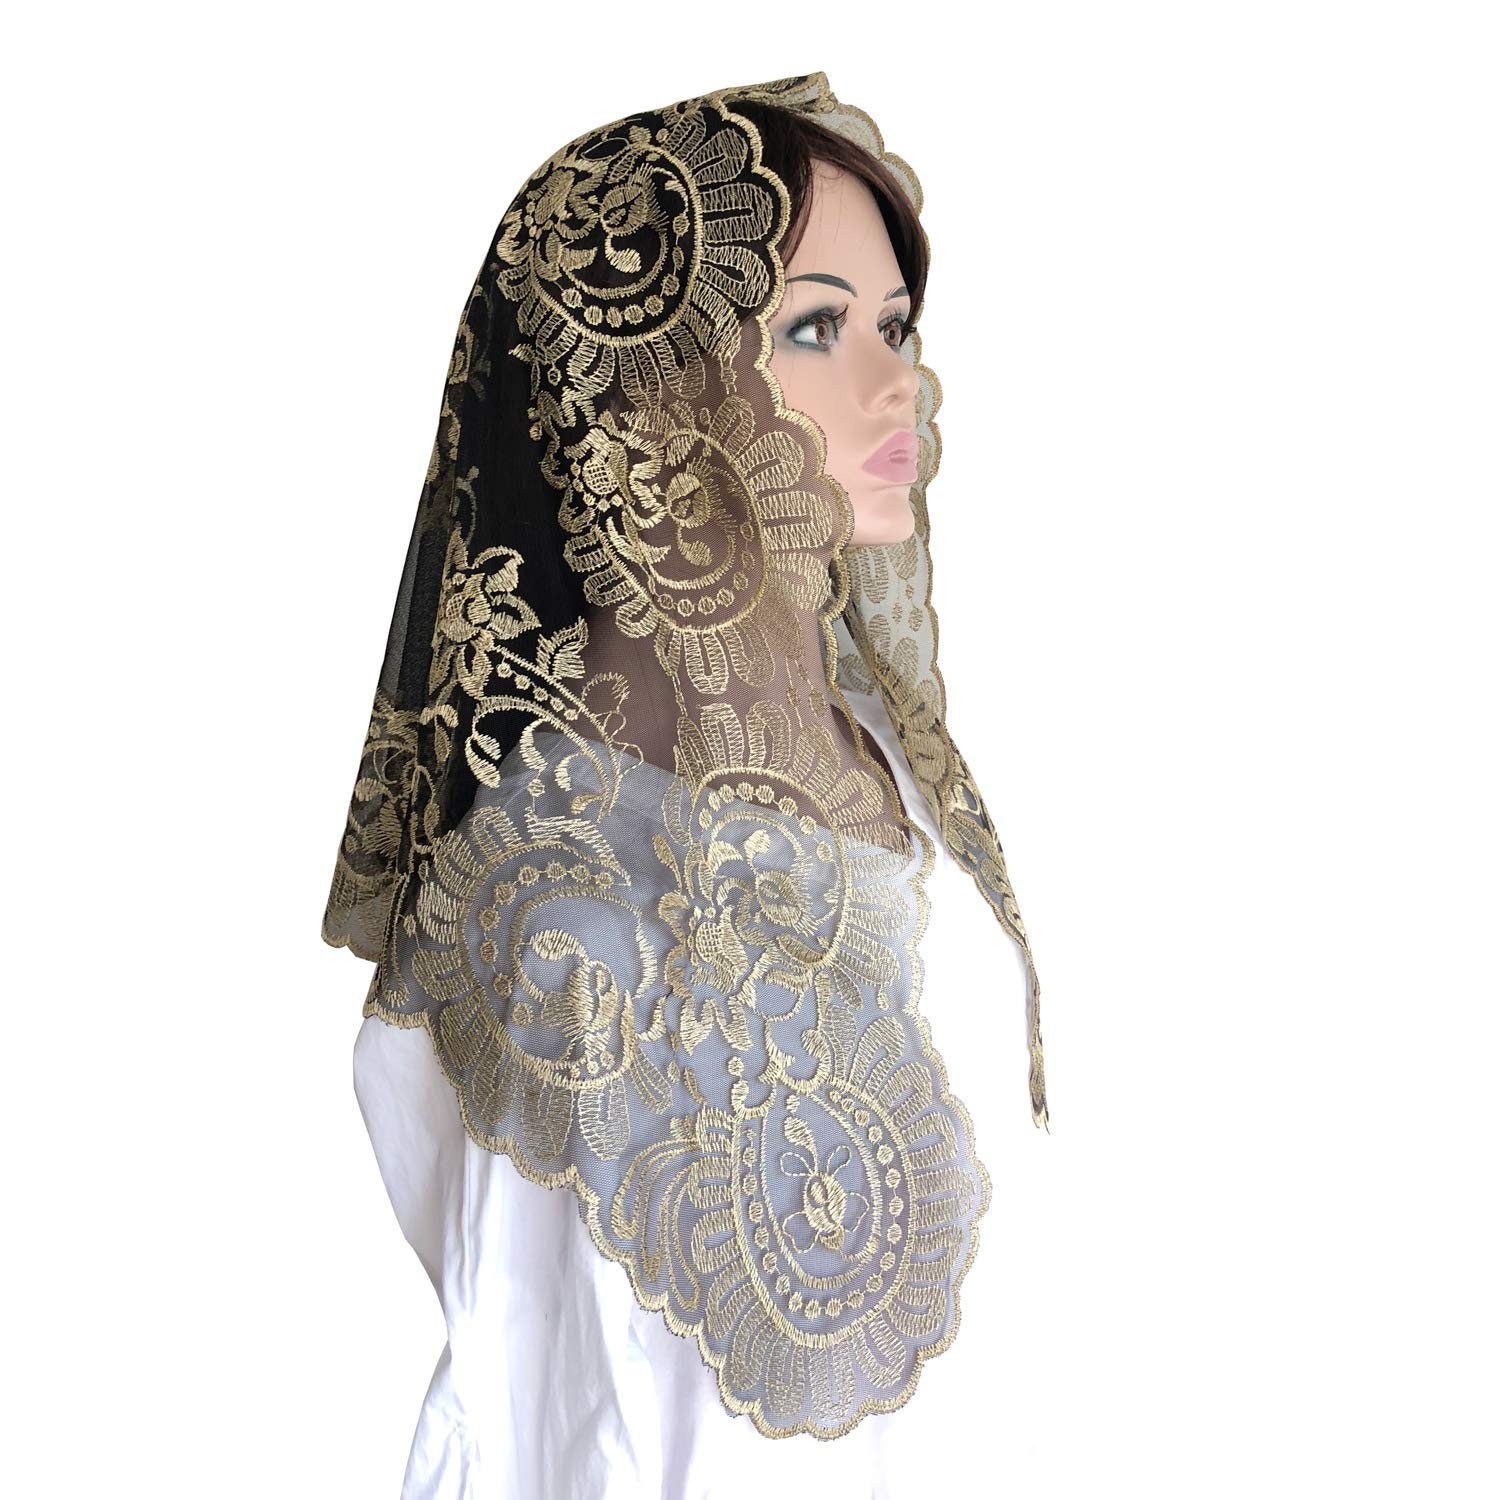 Black and Gold color Embroidery lace Mantilla Catholic church chapel scarf lace Mass